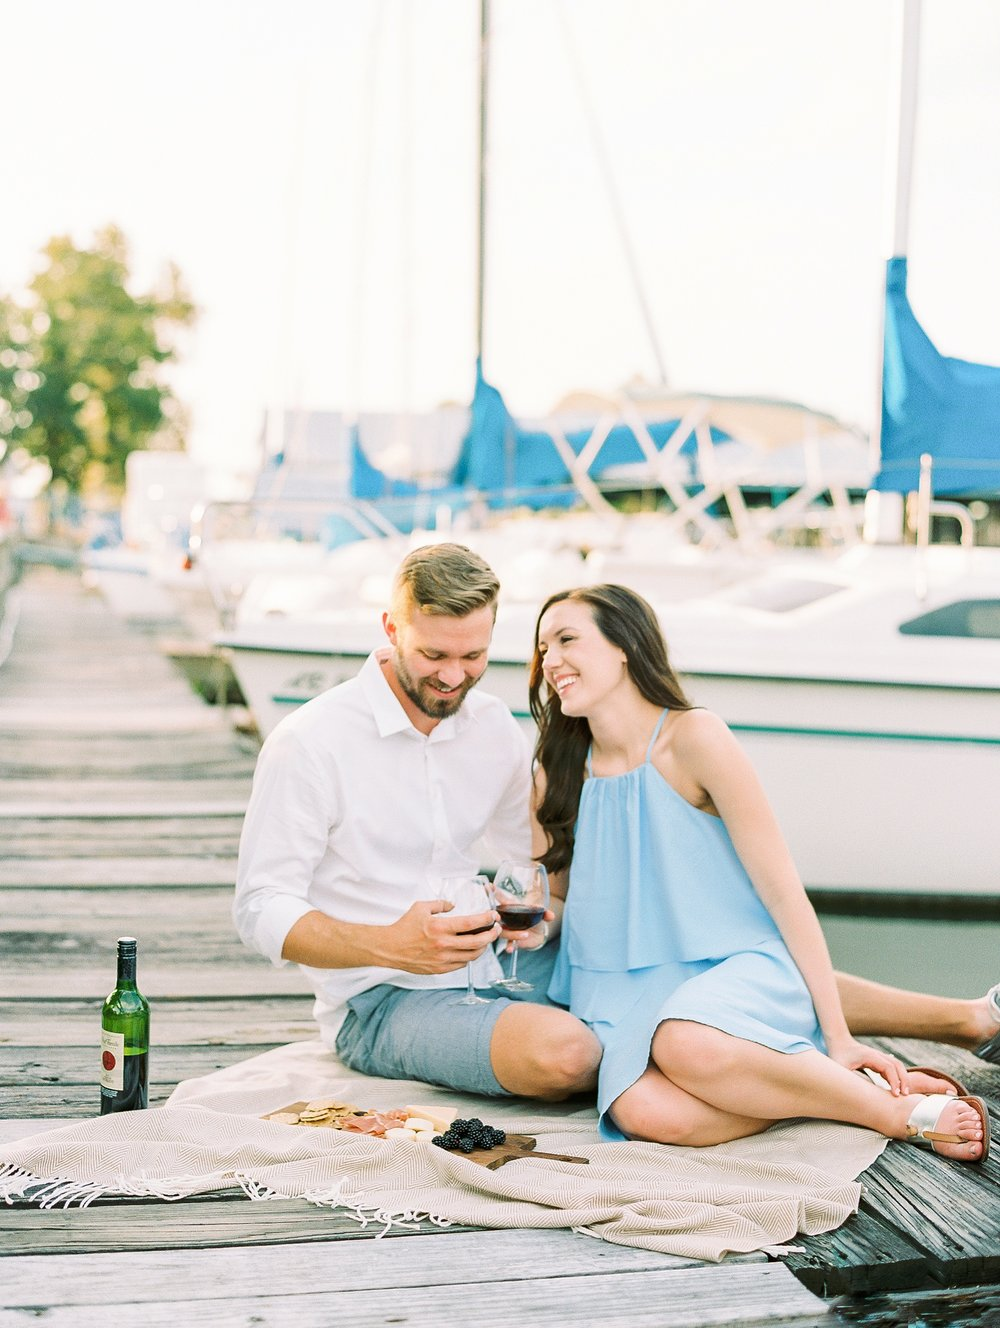 Nautical Boat Engagement Session Film Photographer_0560.jpg